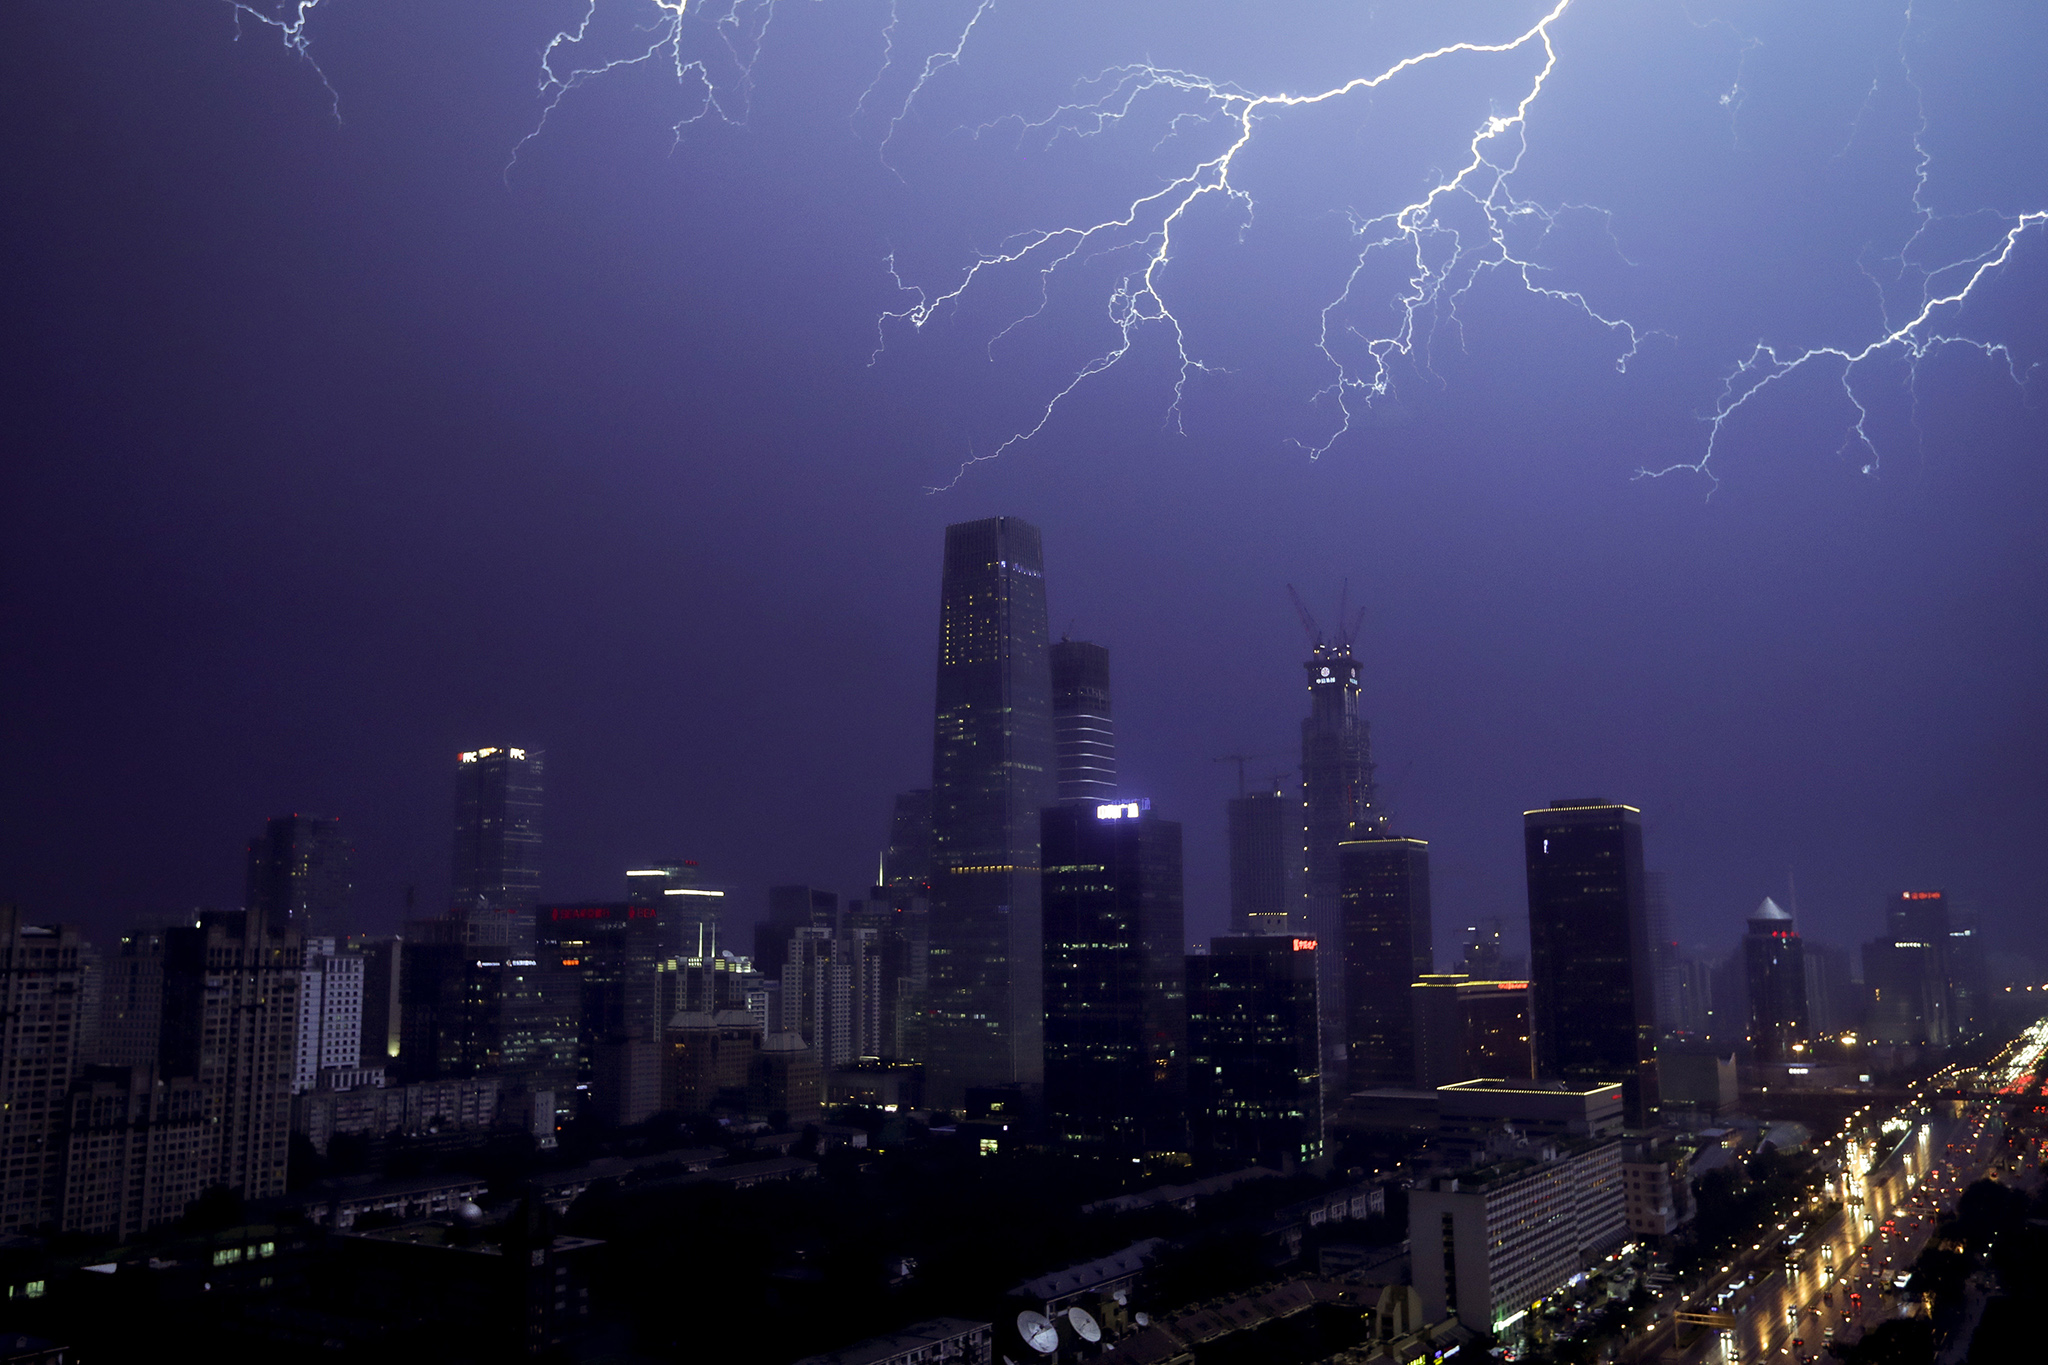 Lightning flashes above skyscrapers in Central Business District during a rainstorm in Beijing, Wednesday